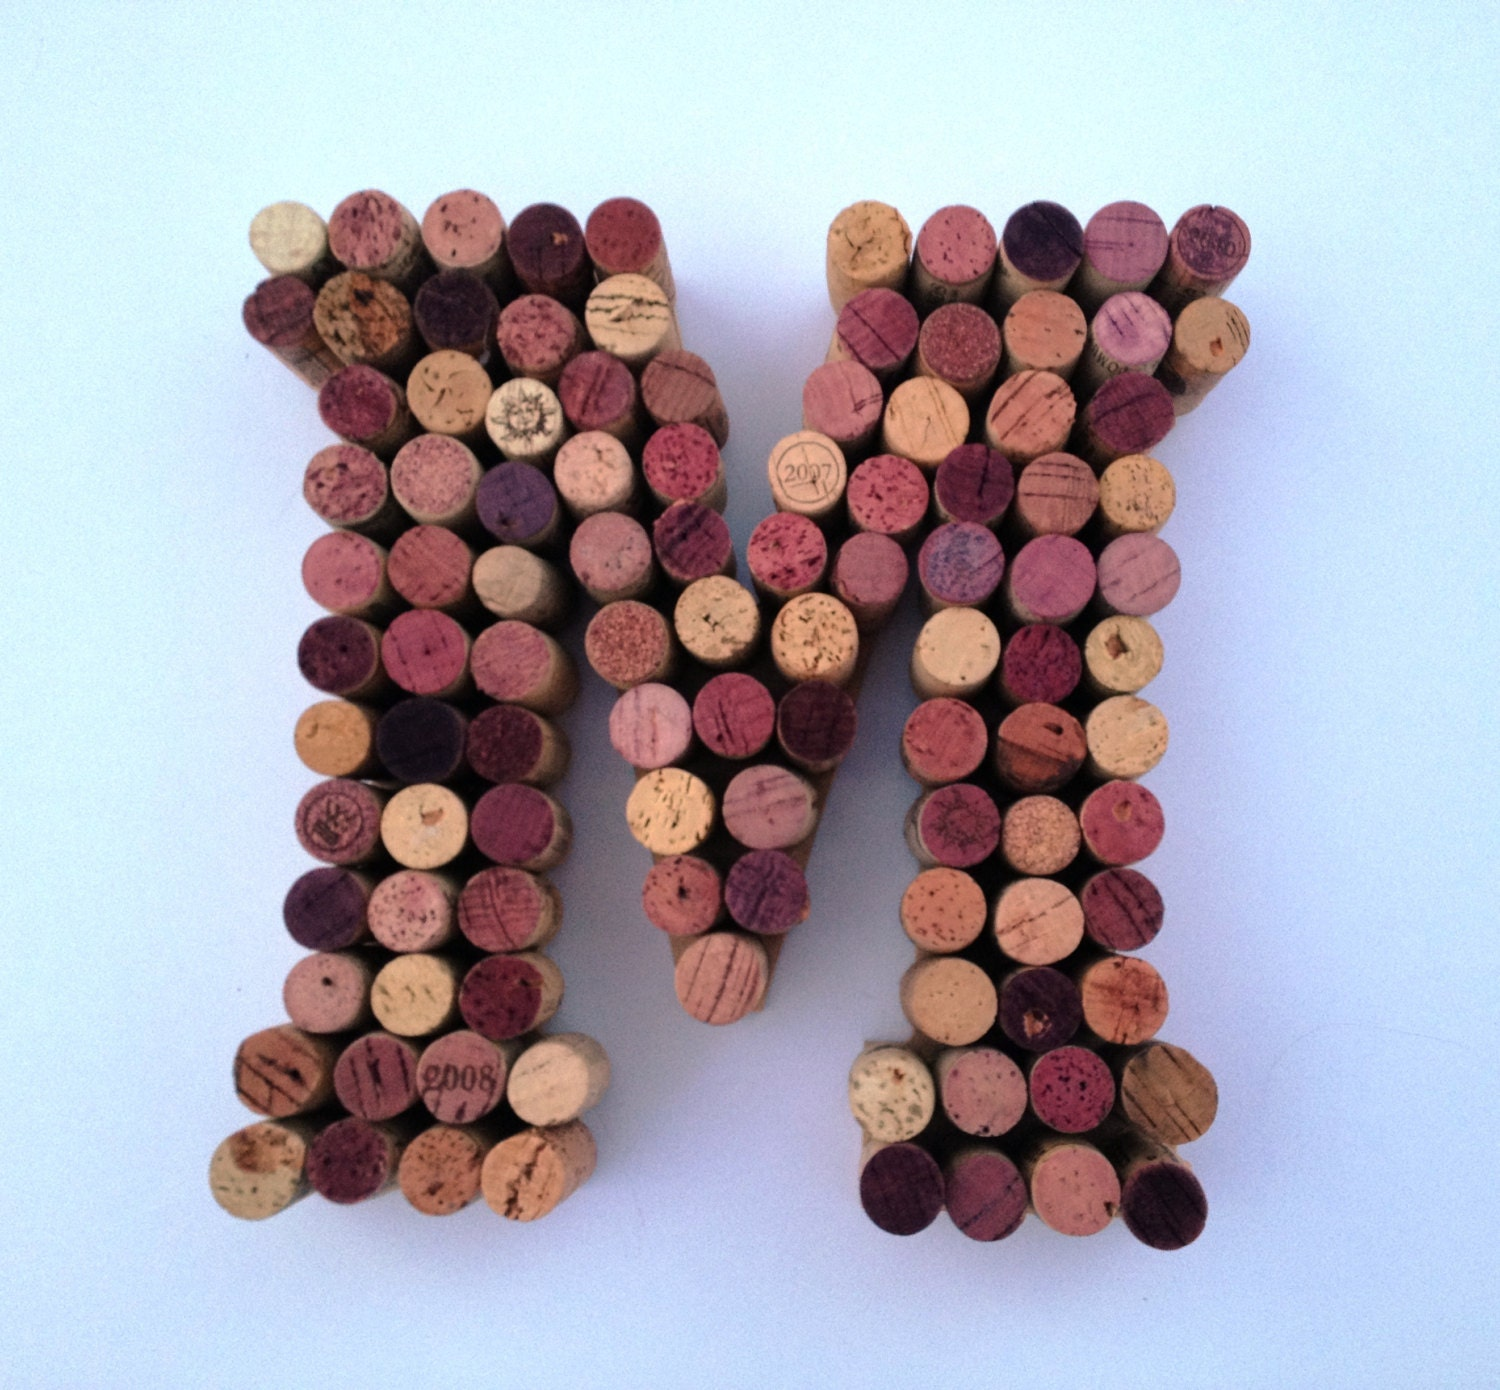 zoom Wine Corks Letter M made from